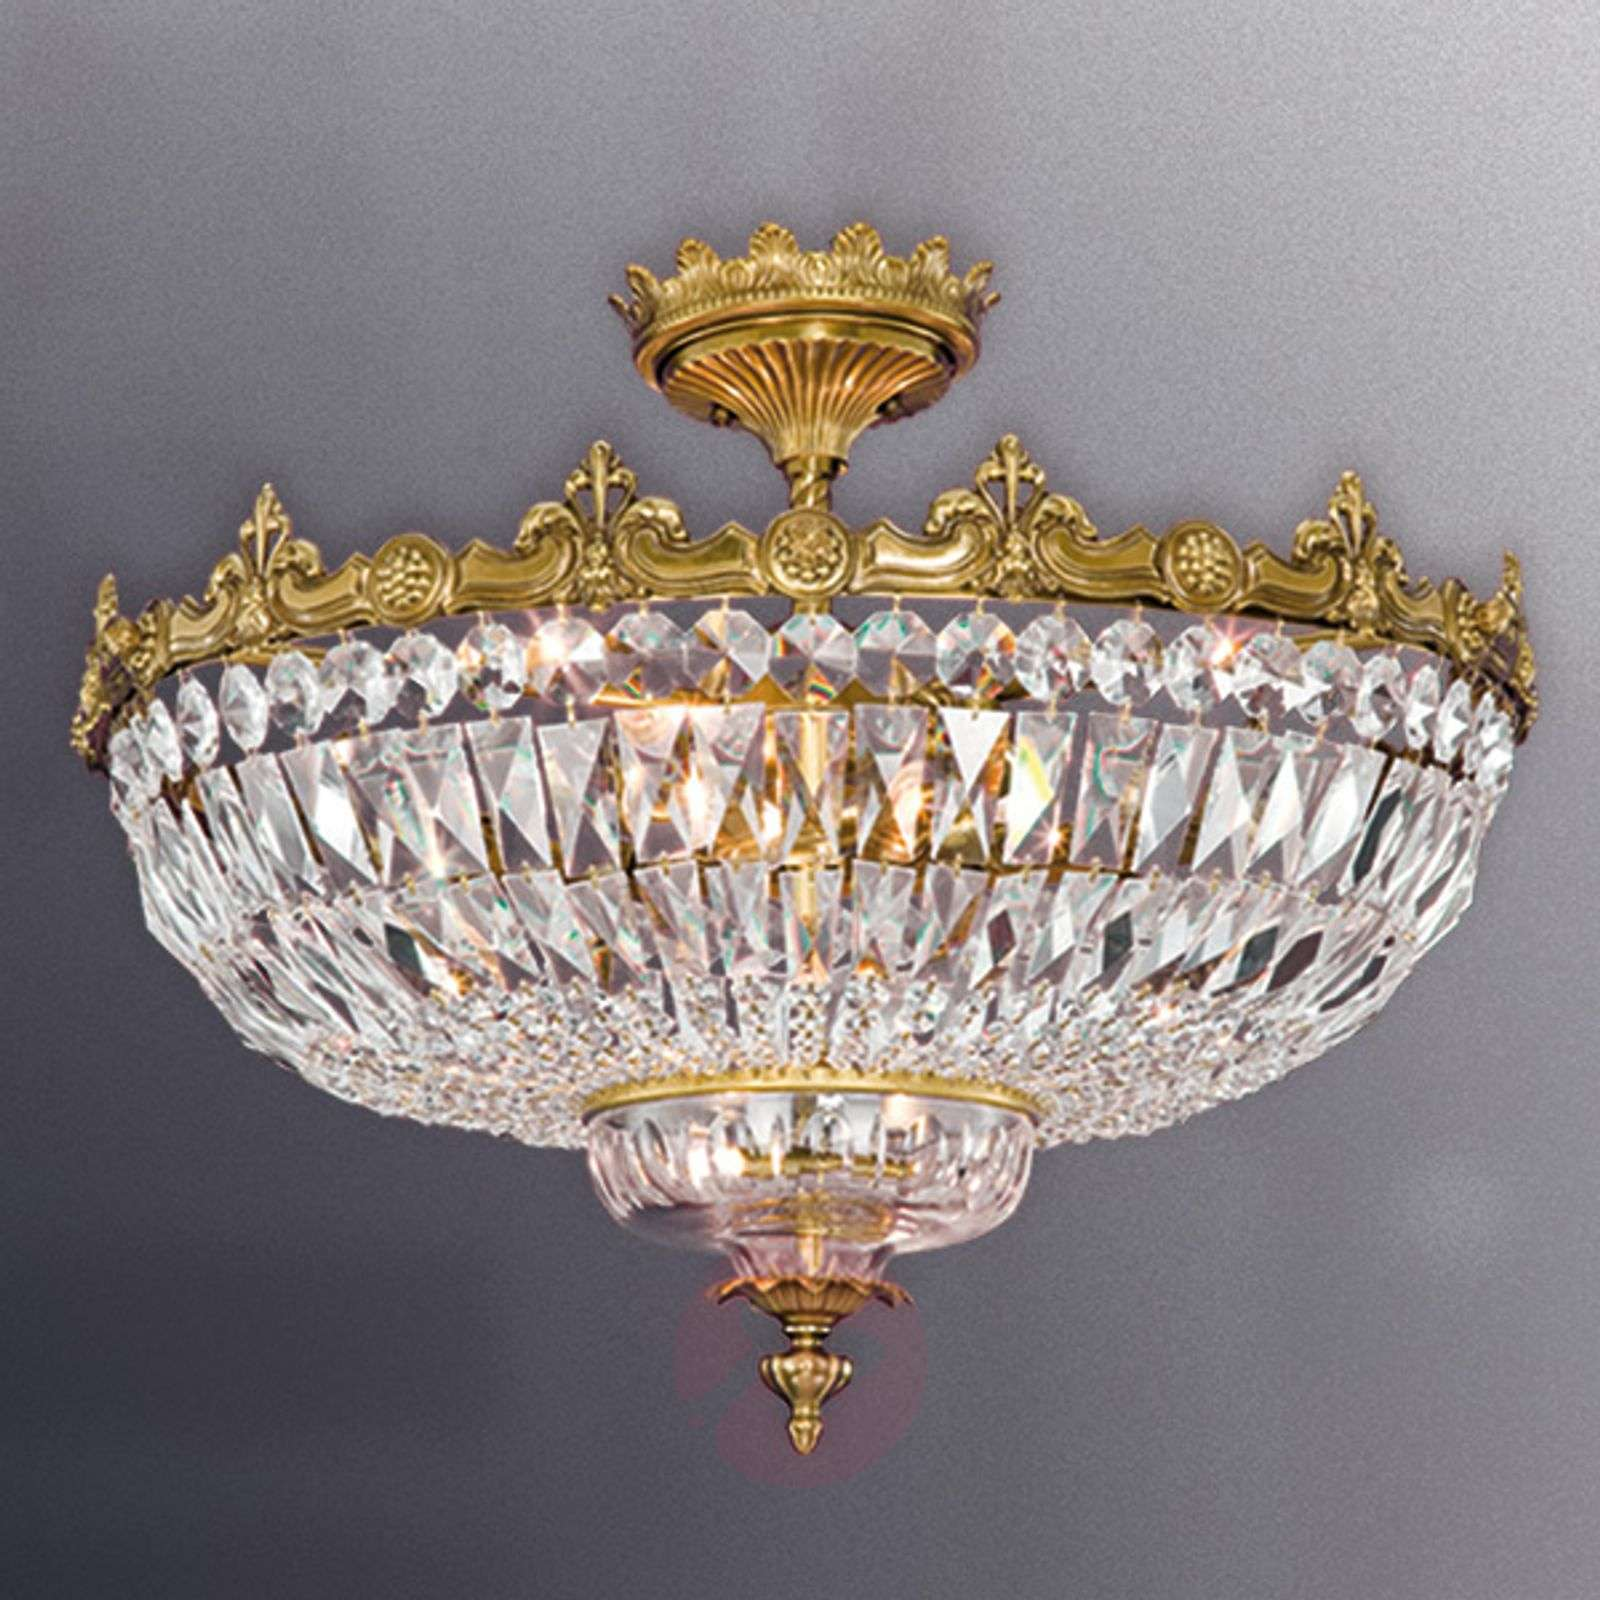 Brass coloured ceiling light stephanie w crystals lights brass coloured ceiling light stephanie w crystals 8023160 01 aloadofball Image collections